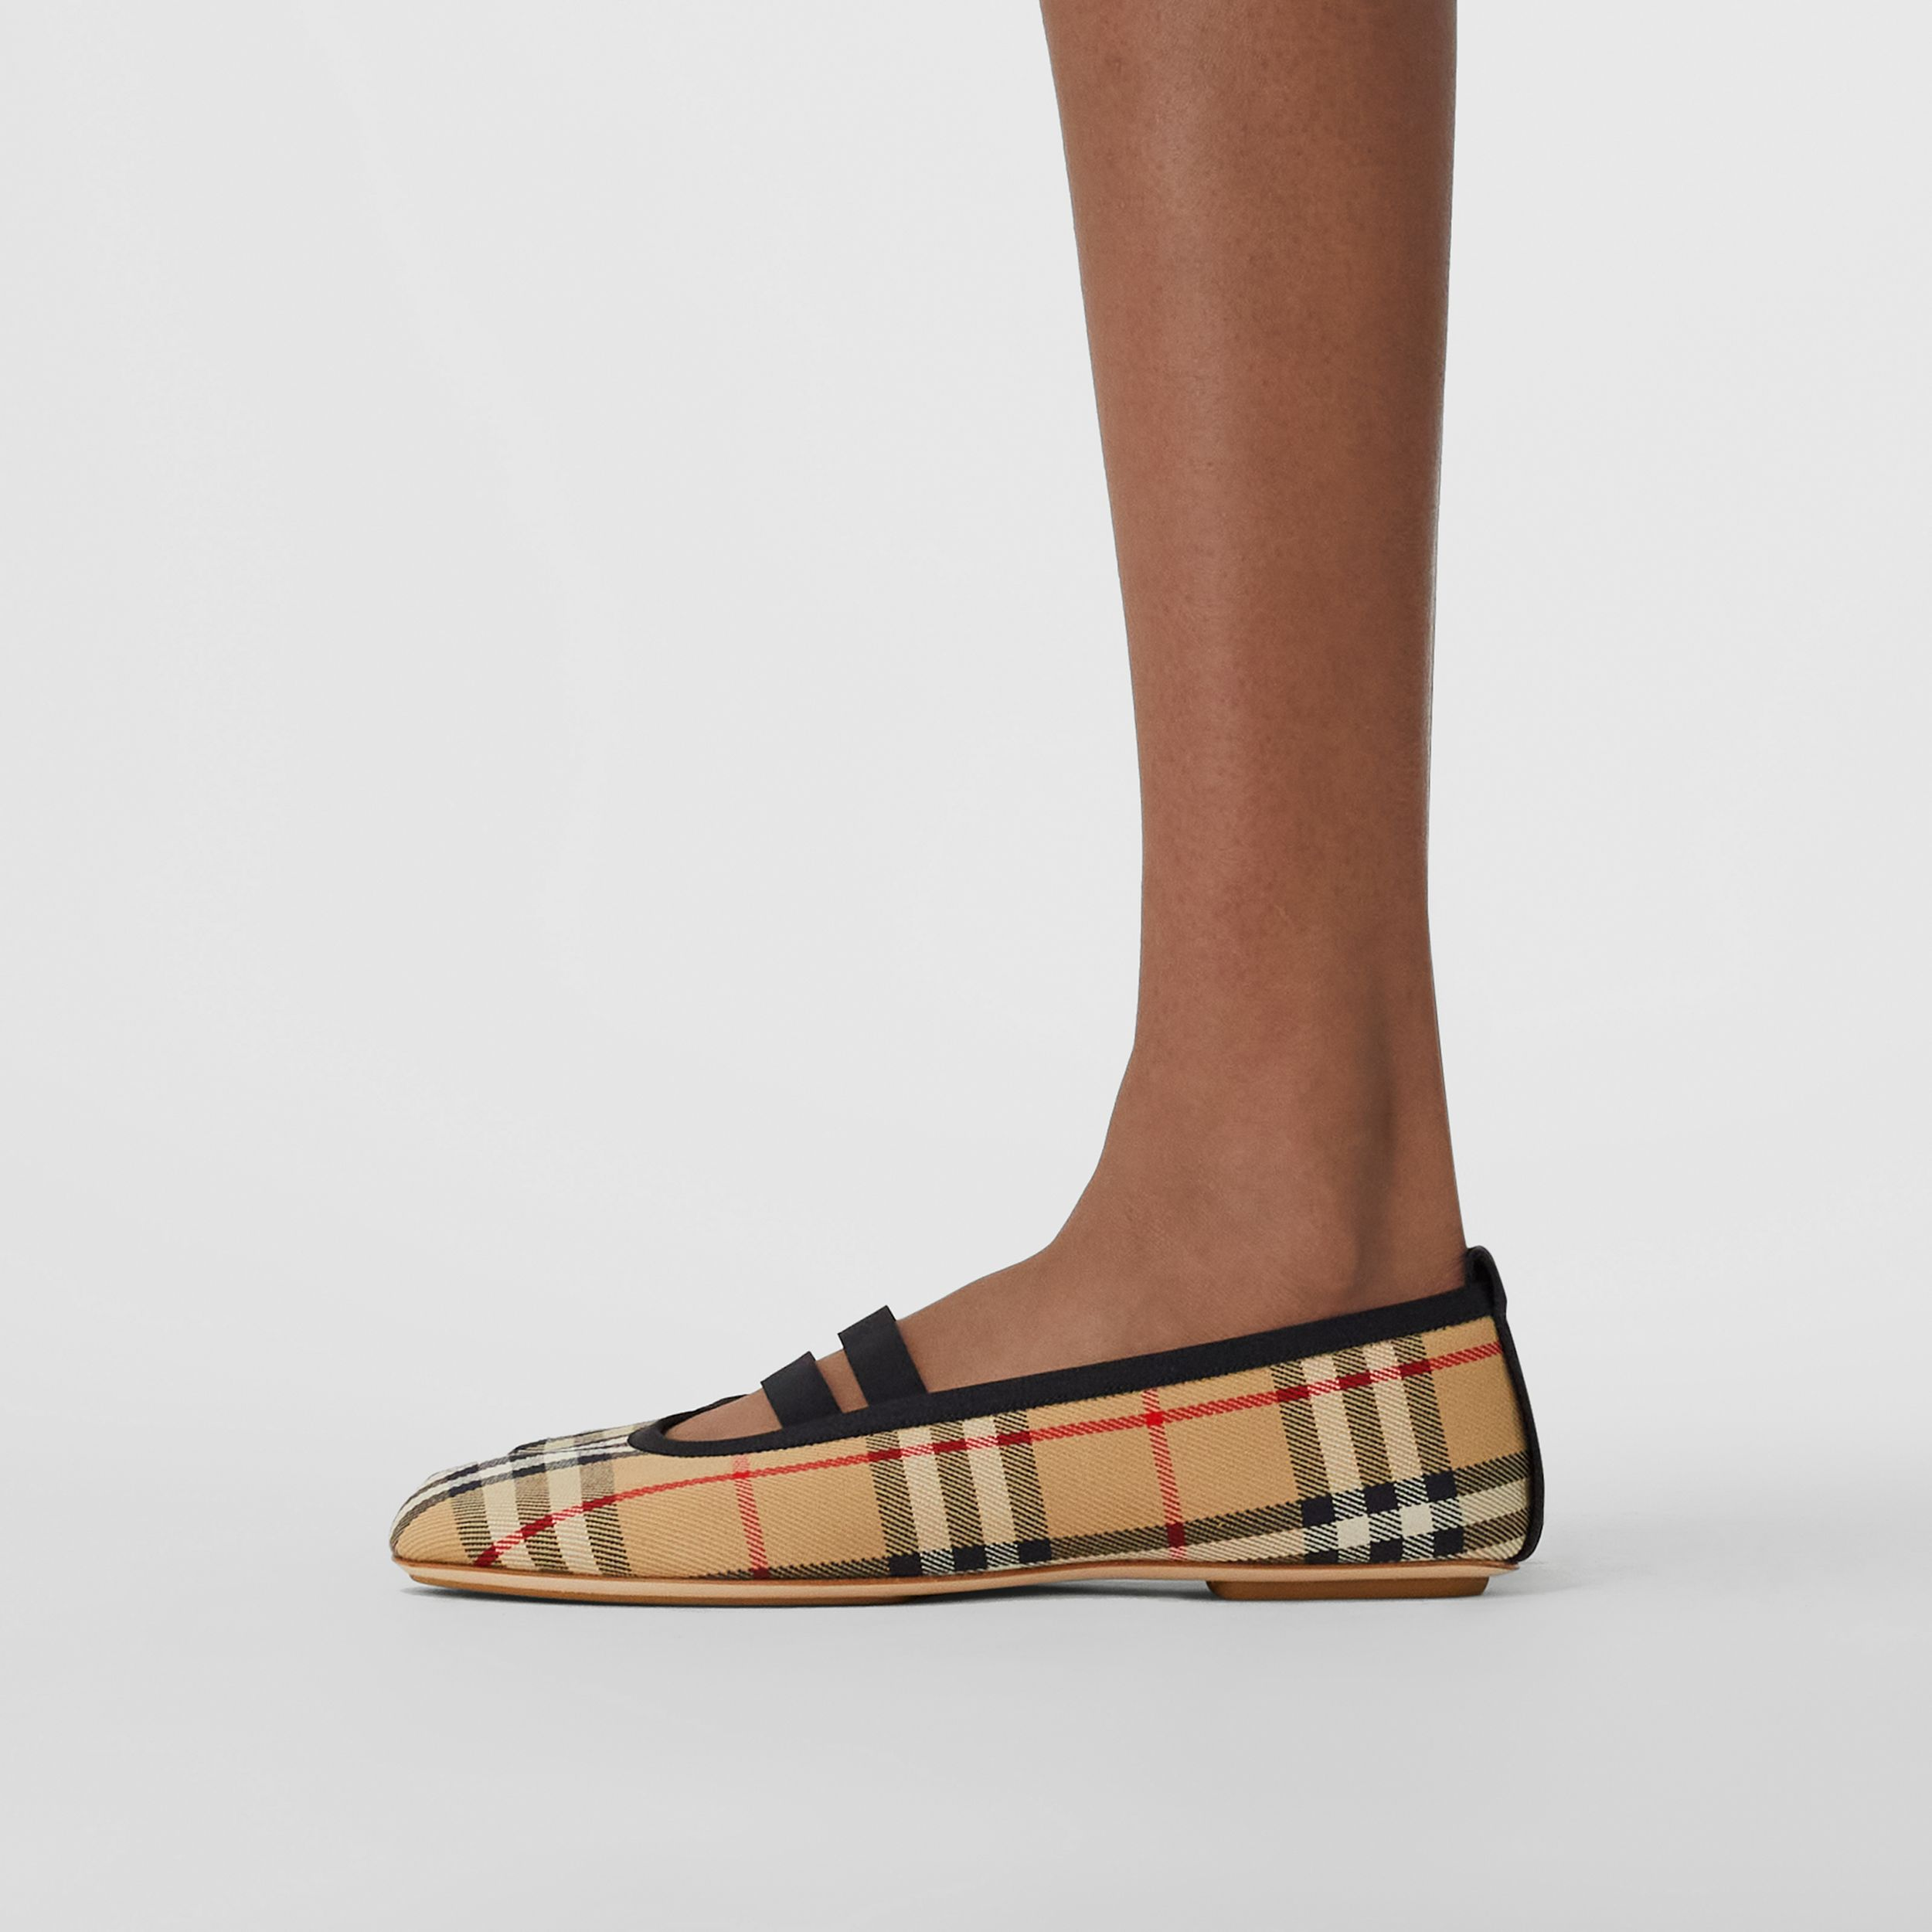 Logo Detail Vintage Check Cotton Ballerinas in Archive Beige - Women | Burberry - 3